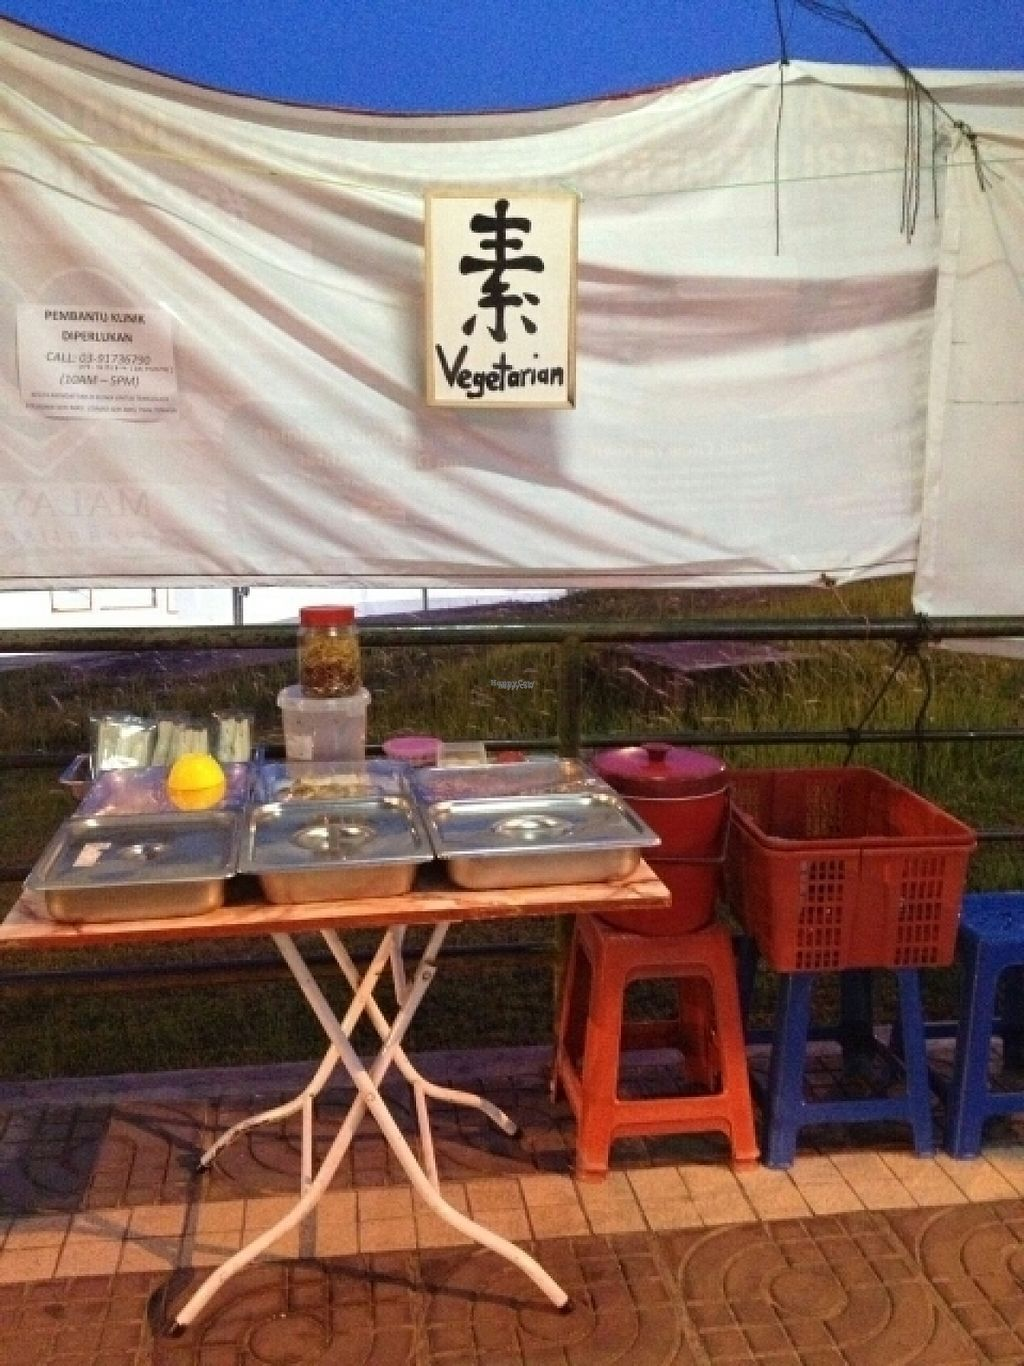 """Photo of Vegetarian Halal - Food Stall  by <a href=""""/members/profile/CheeLeongLee"""">CheeLeongLee</a> <br/>vegetarian stall <br/> November 7, 2016  - <a href='/contact/abuse/image/82331/187105'>Report</a>"""